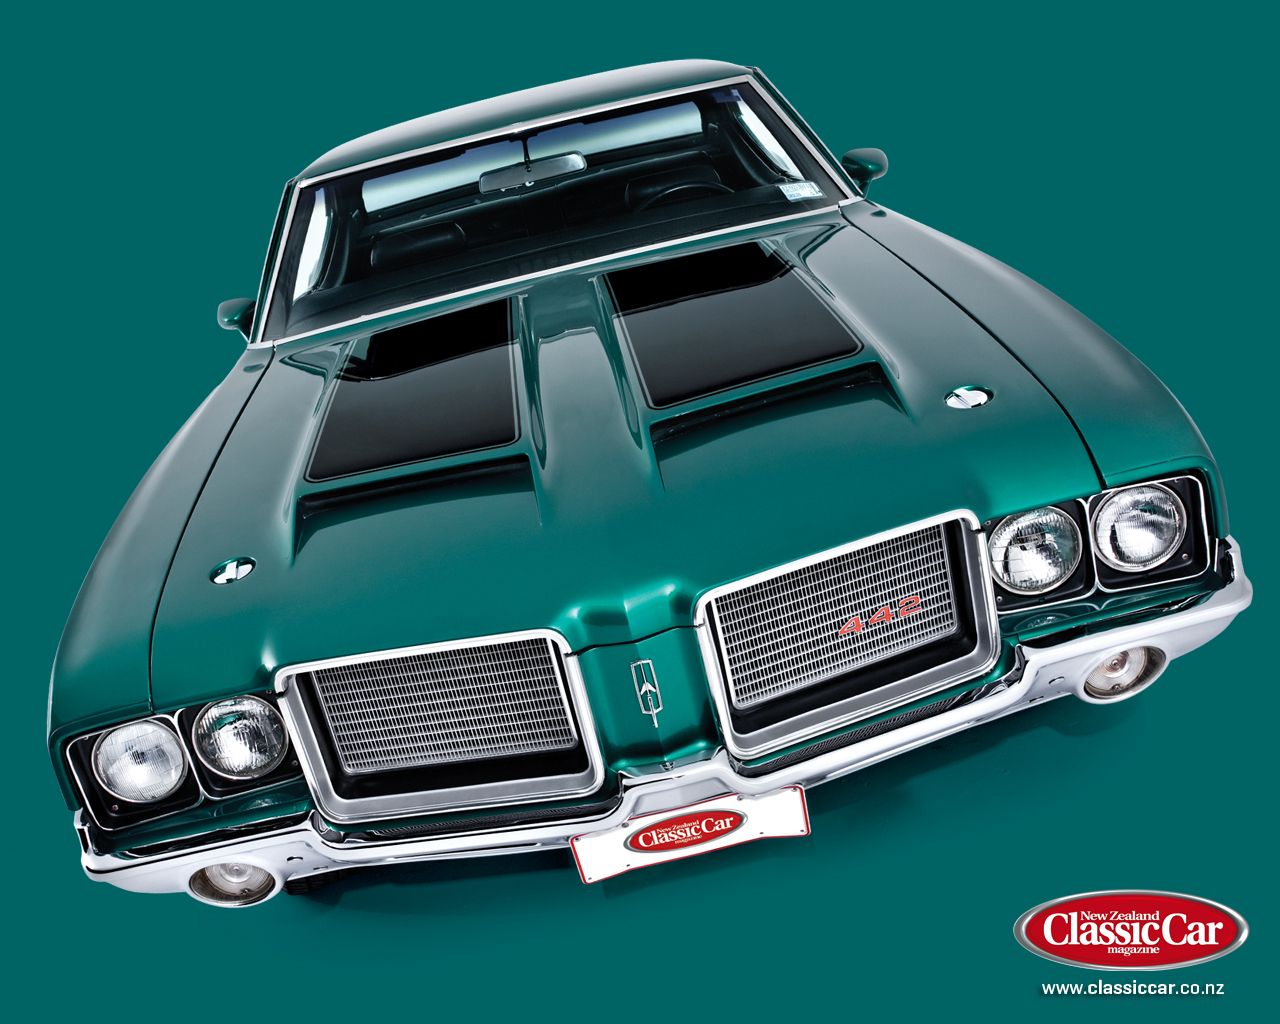 Oldsmobile Cutlass 442 Classic Chevy Trucks Classic Cars Muscle